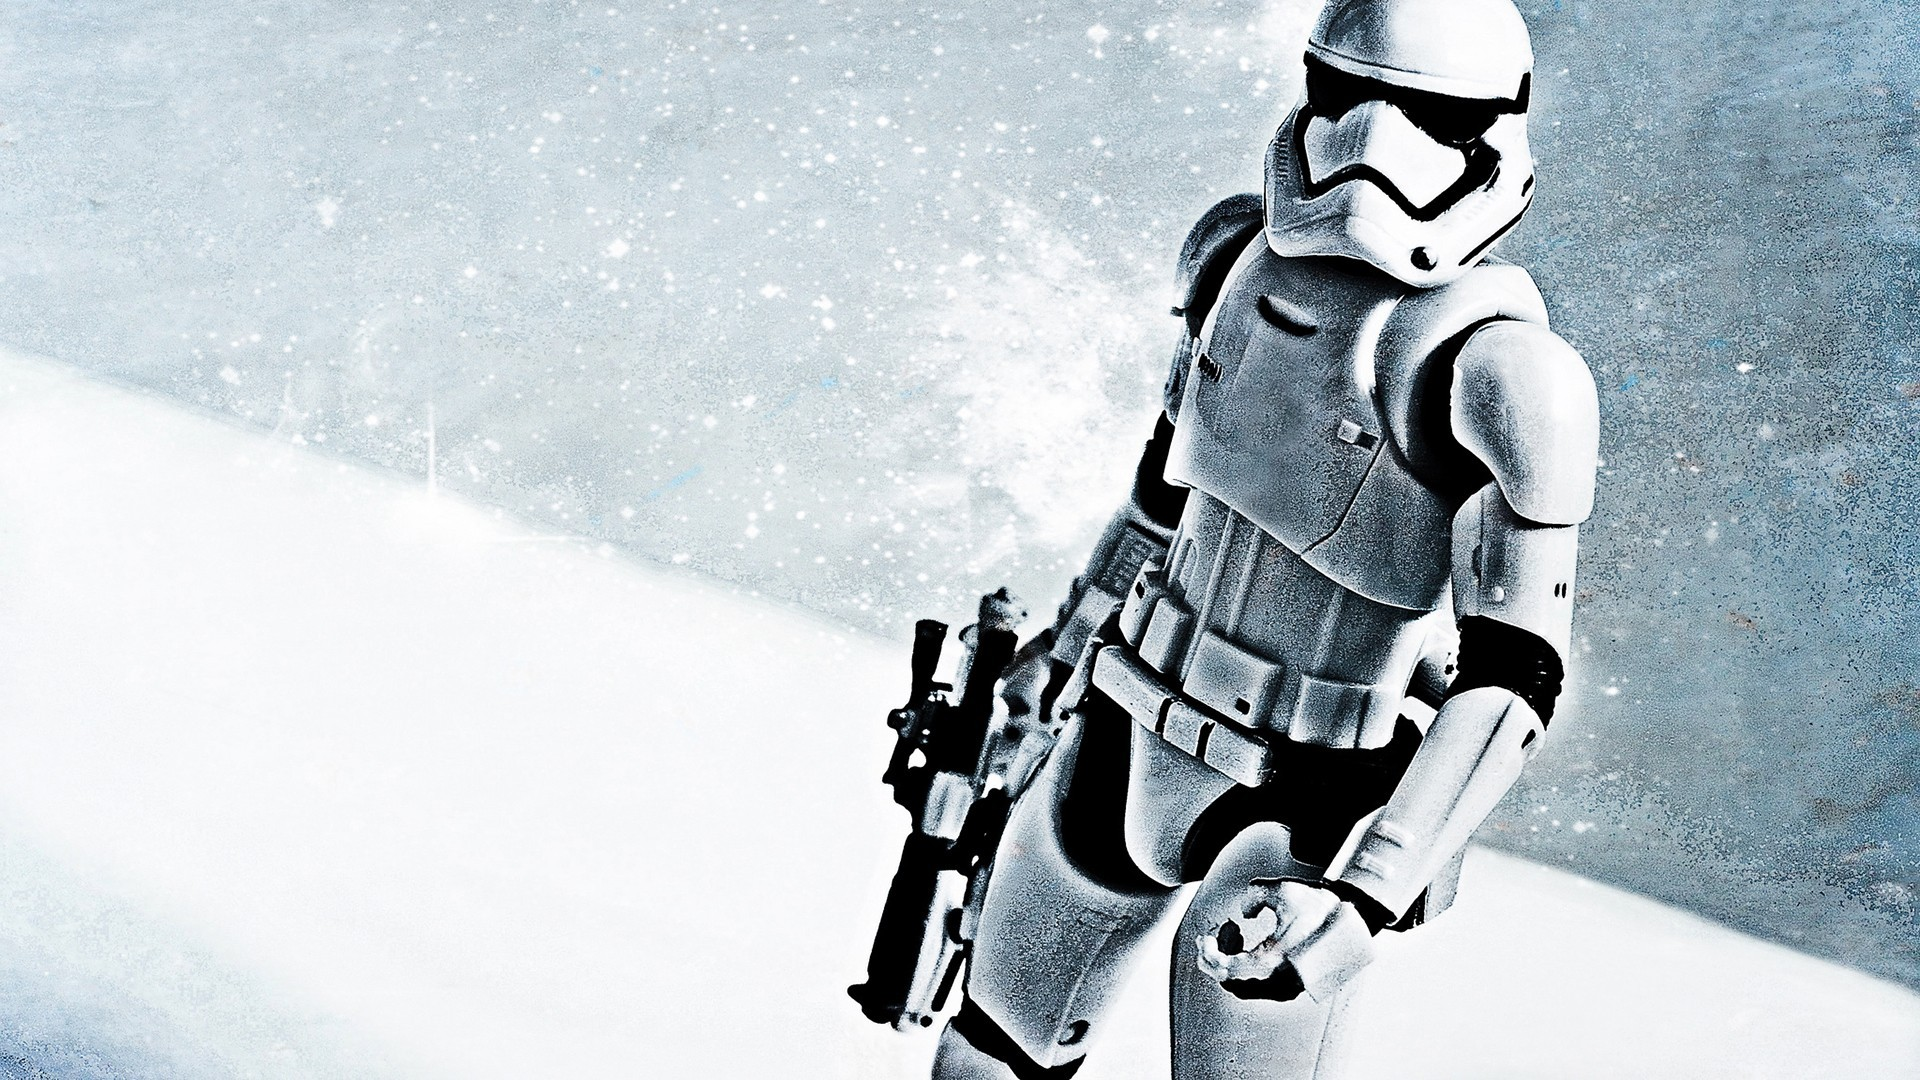 Stormtrooper Wallpaper ·① Download Free Awesome